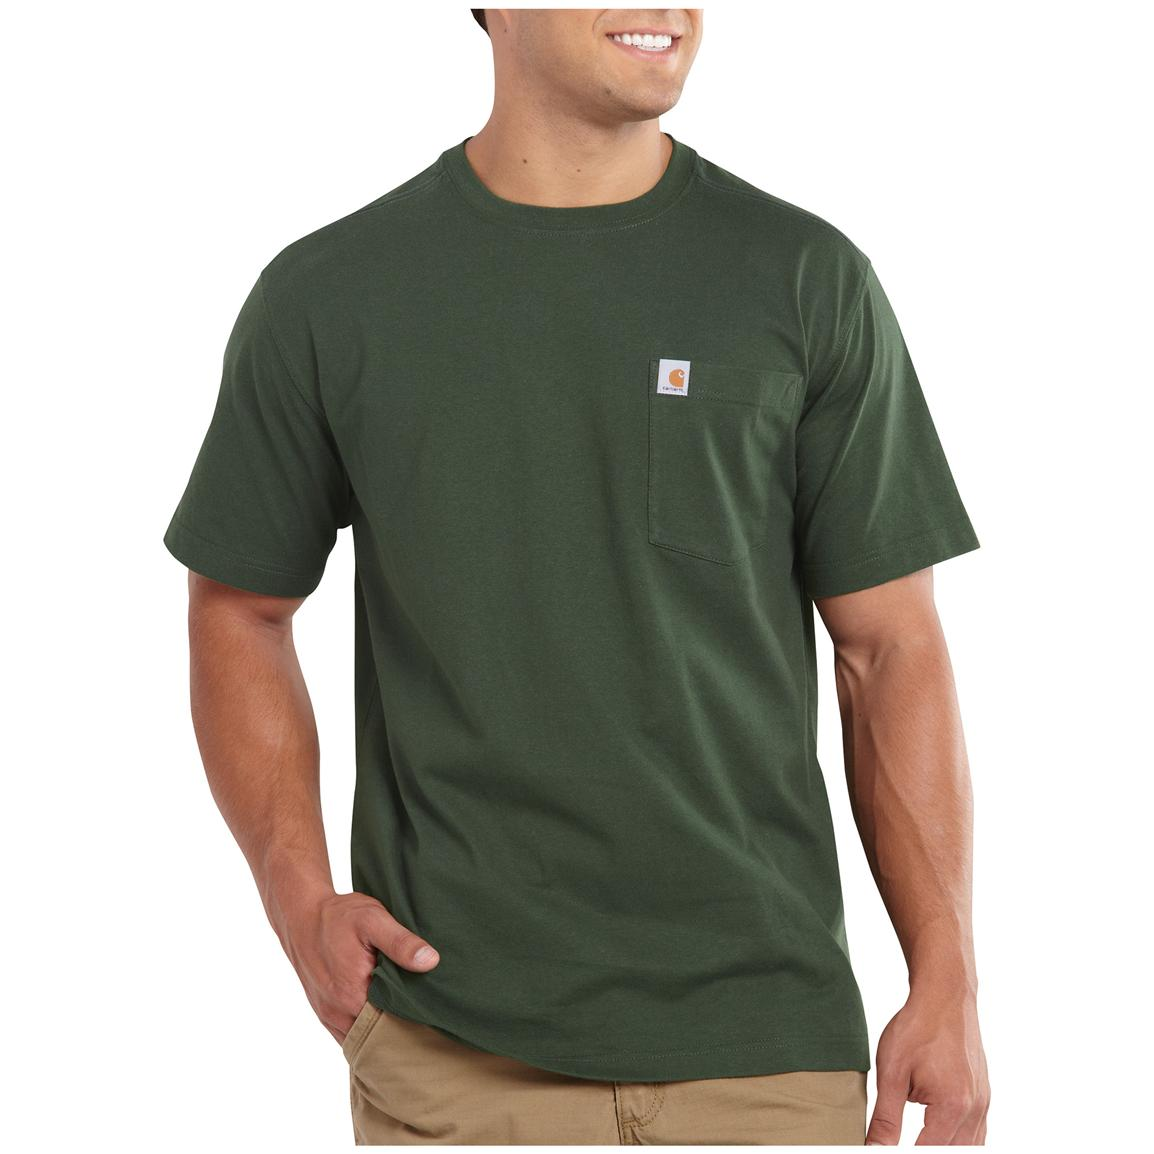 Carhartt Maddock Pocket Short-sleeve T-shirt, Green